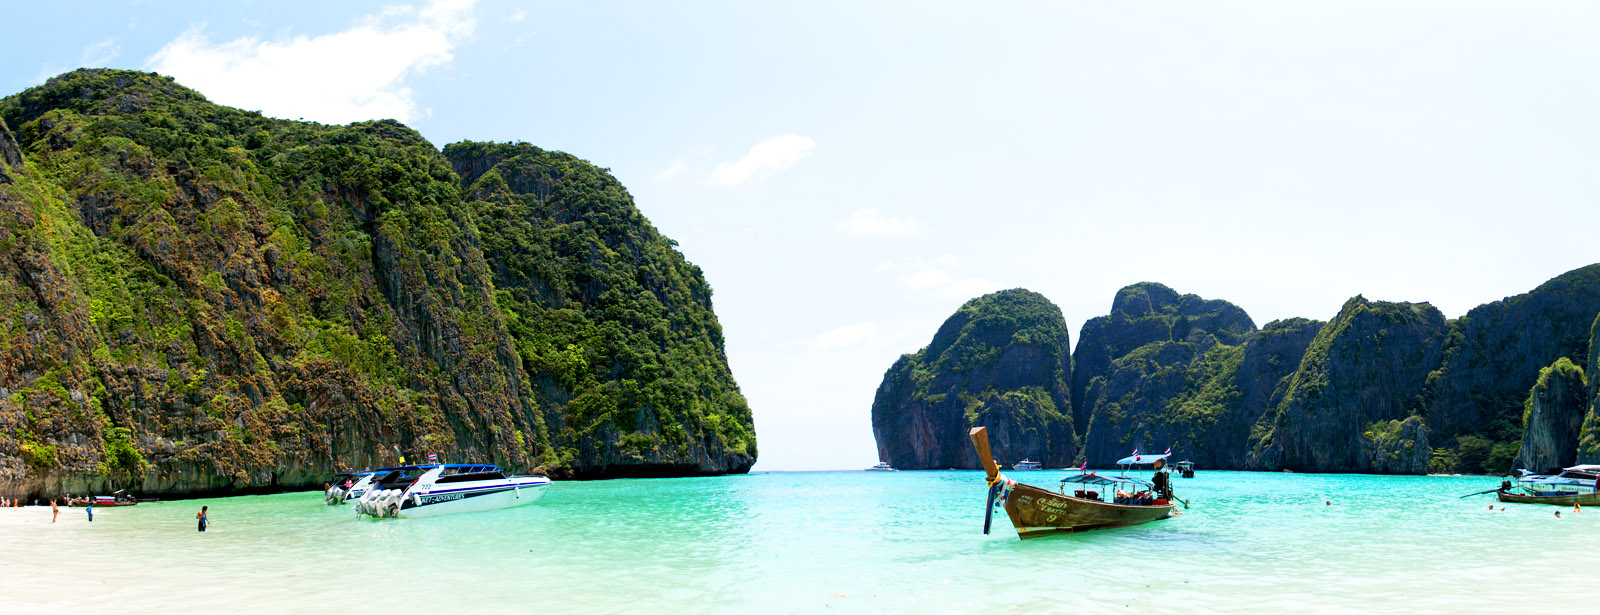 Maya Bay: How to Avoid the Crowds and Be Alone in Paradise